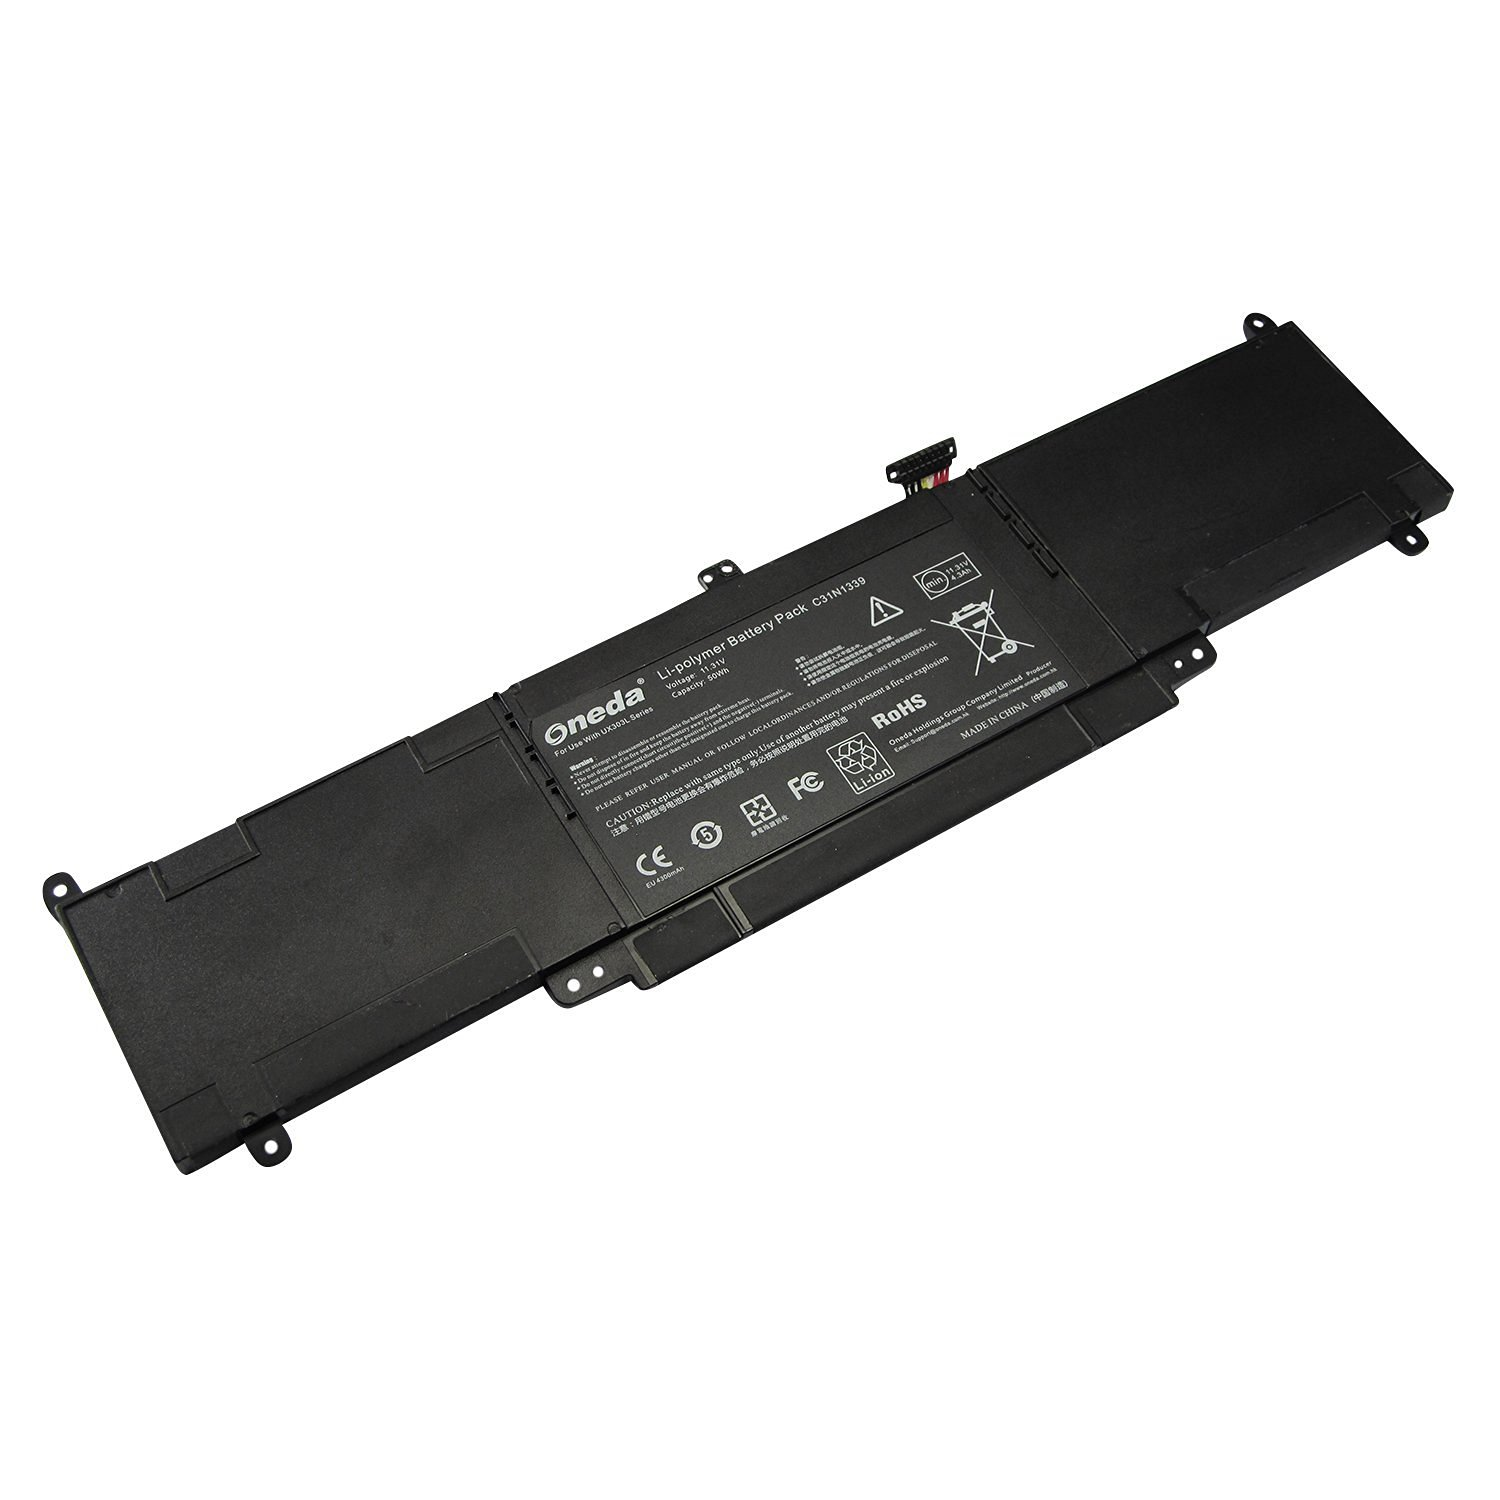 Oneda New High Performance Laptop Notebook Battery for Asus UX303 U303L Q302L UX303L UX303LN Series ; P/N: C31N1339 0B200-00930000 Replacement batteries Pack [11.31V / 50Wh]